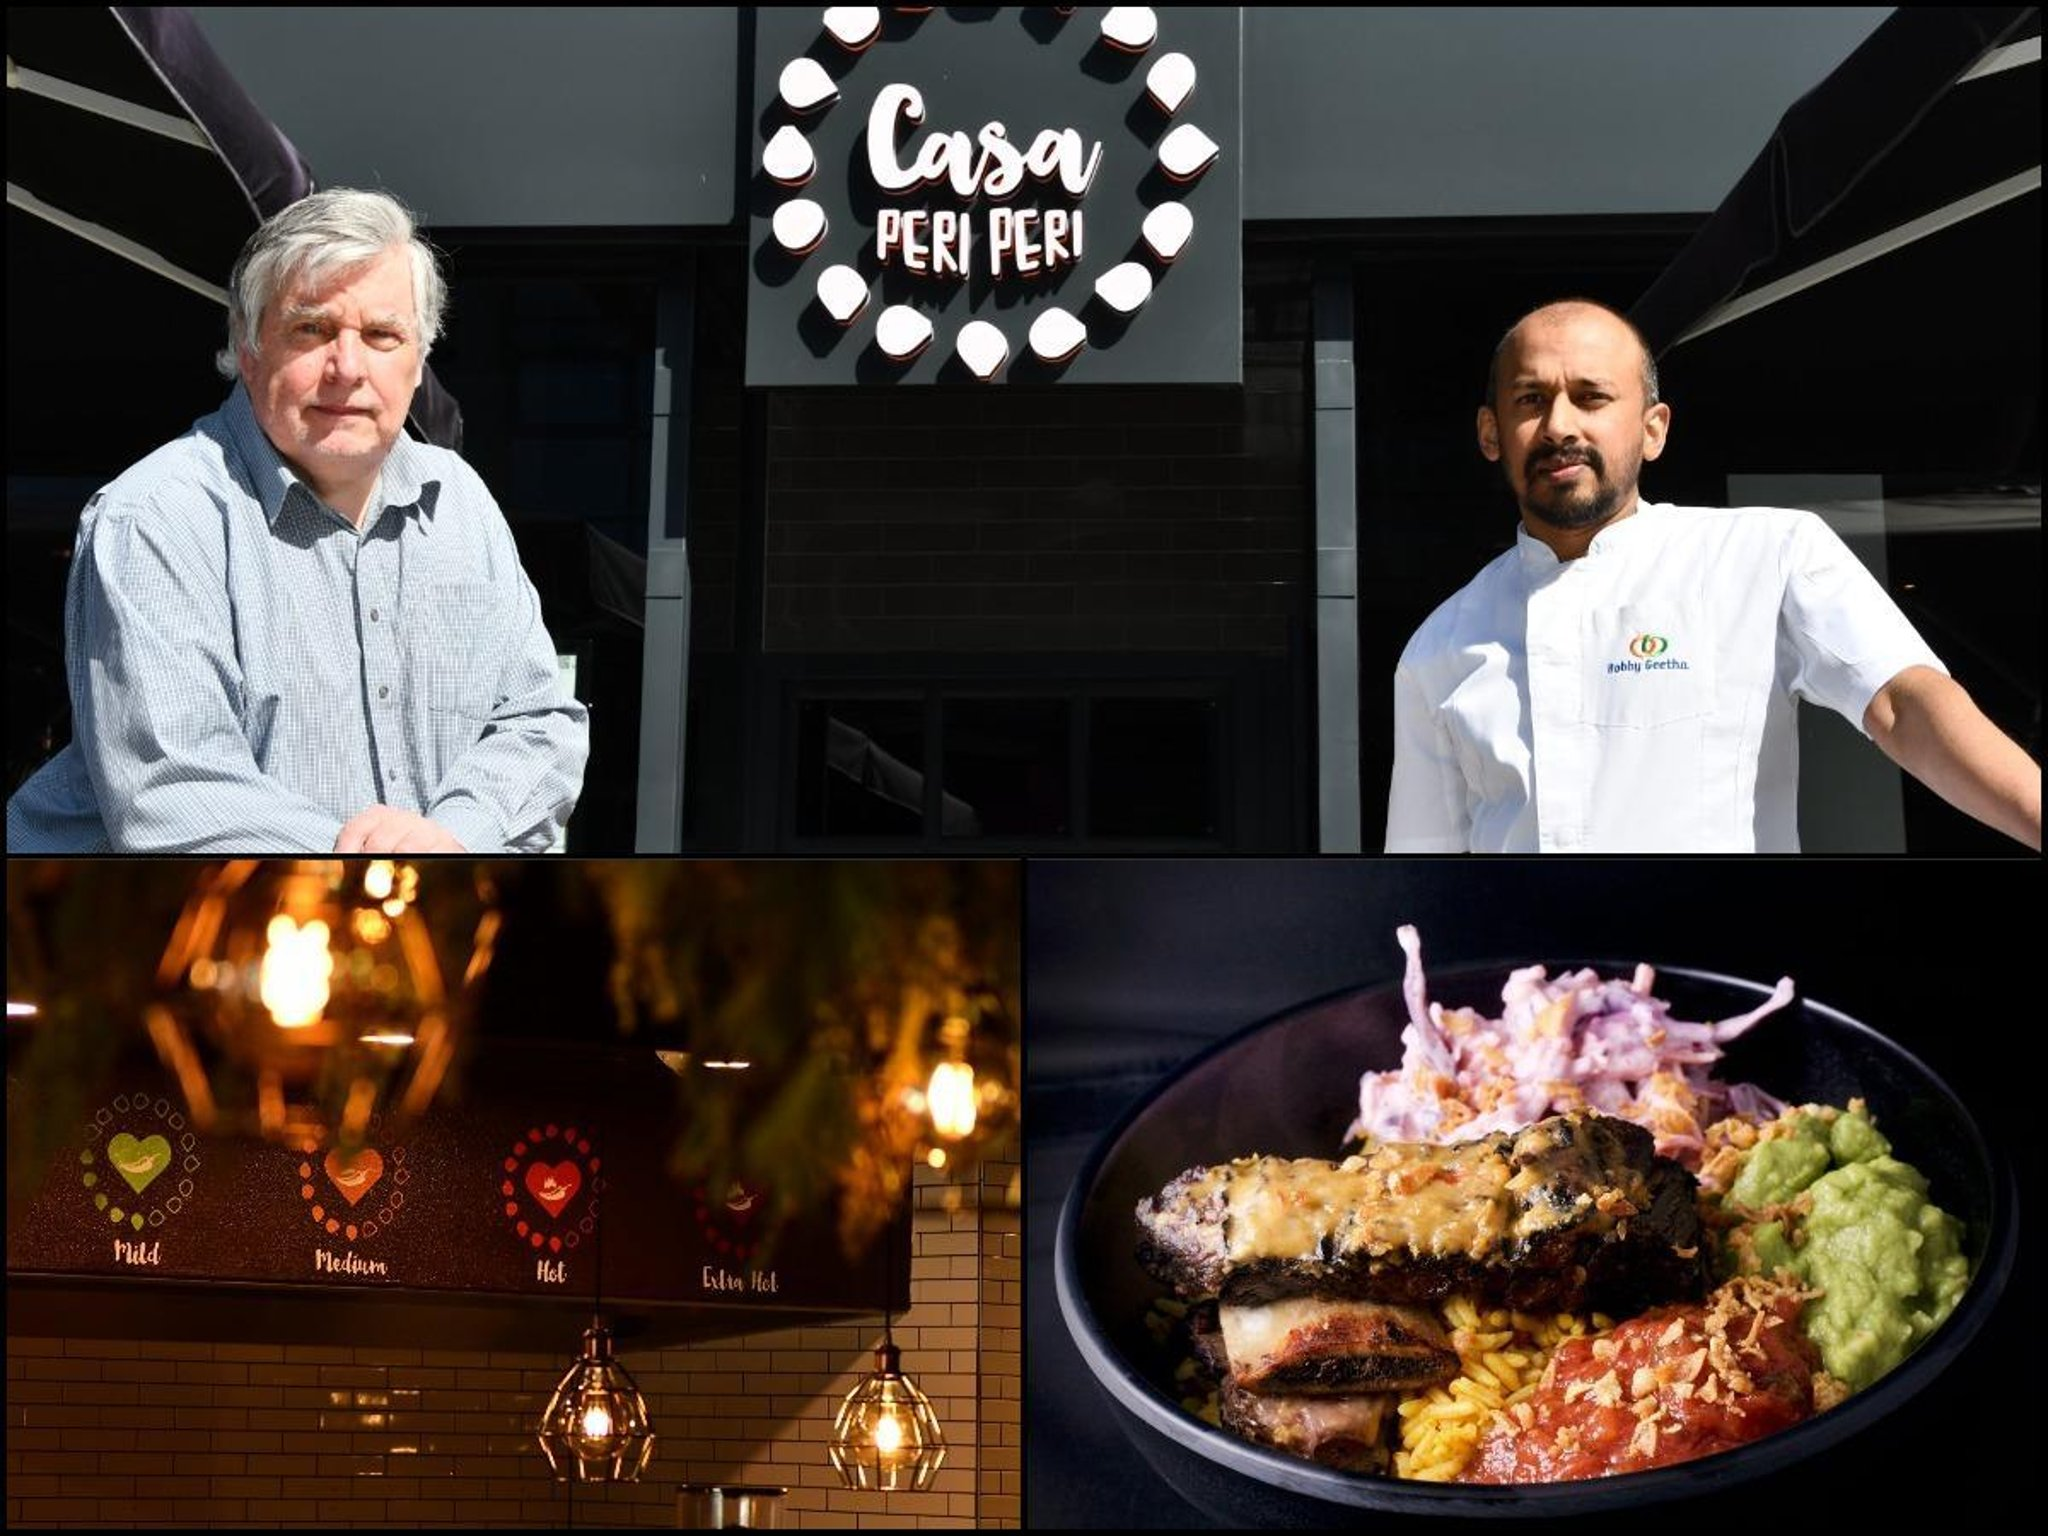 Peri peri chicken, slow cooked beef and spicy rice on offer at new Wakefield restaurant by MasterChef contestant